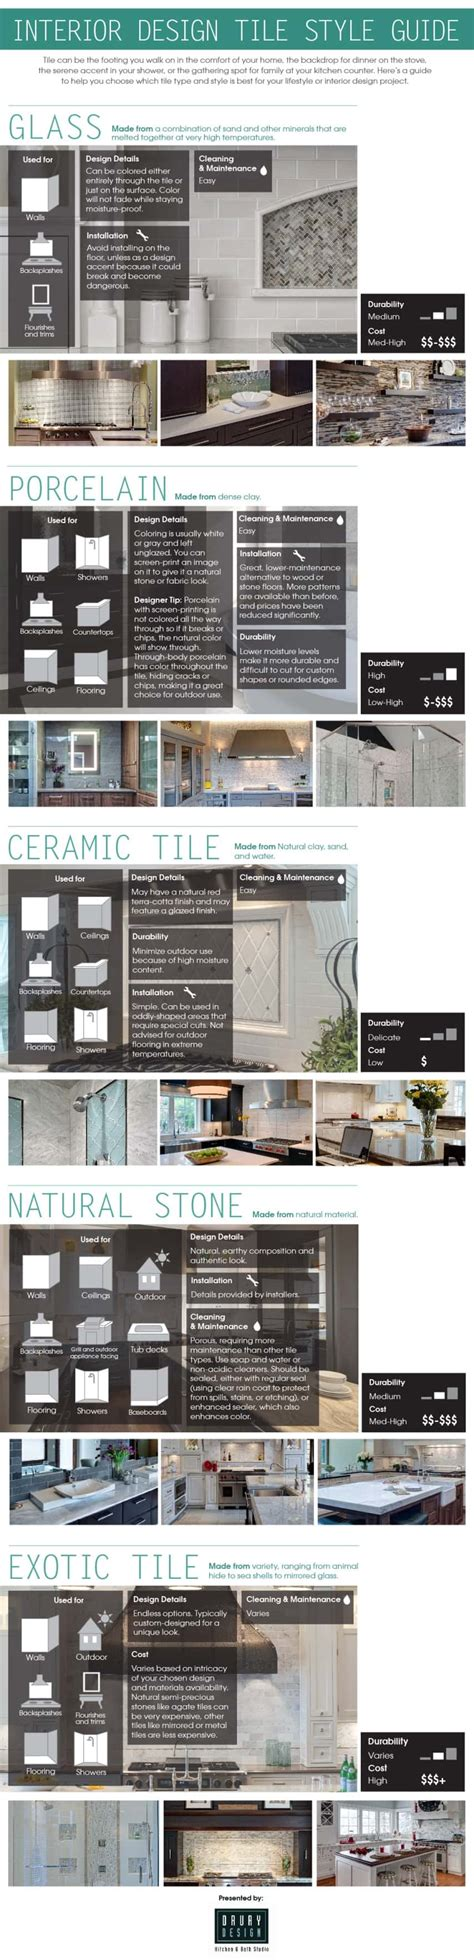 home design guide 25 home d 233 cor infographics and cheat sheets that every home owner must see epic home ideas